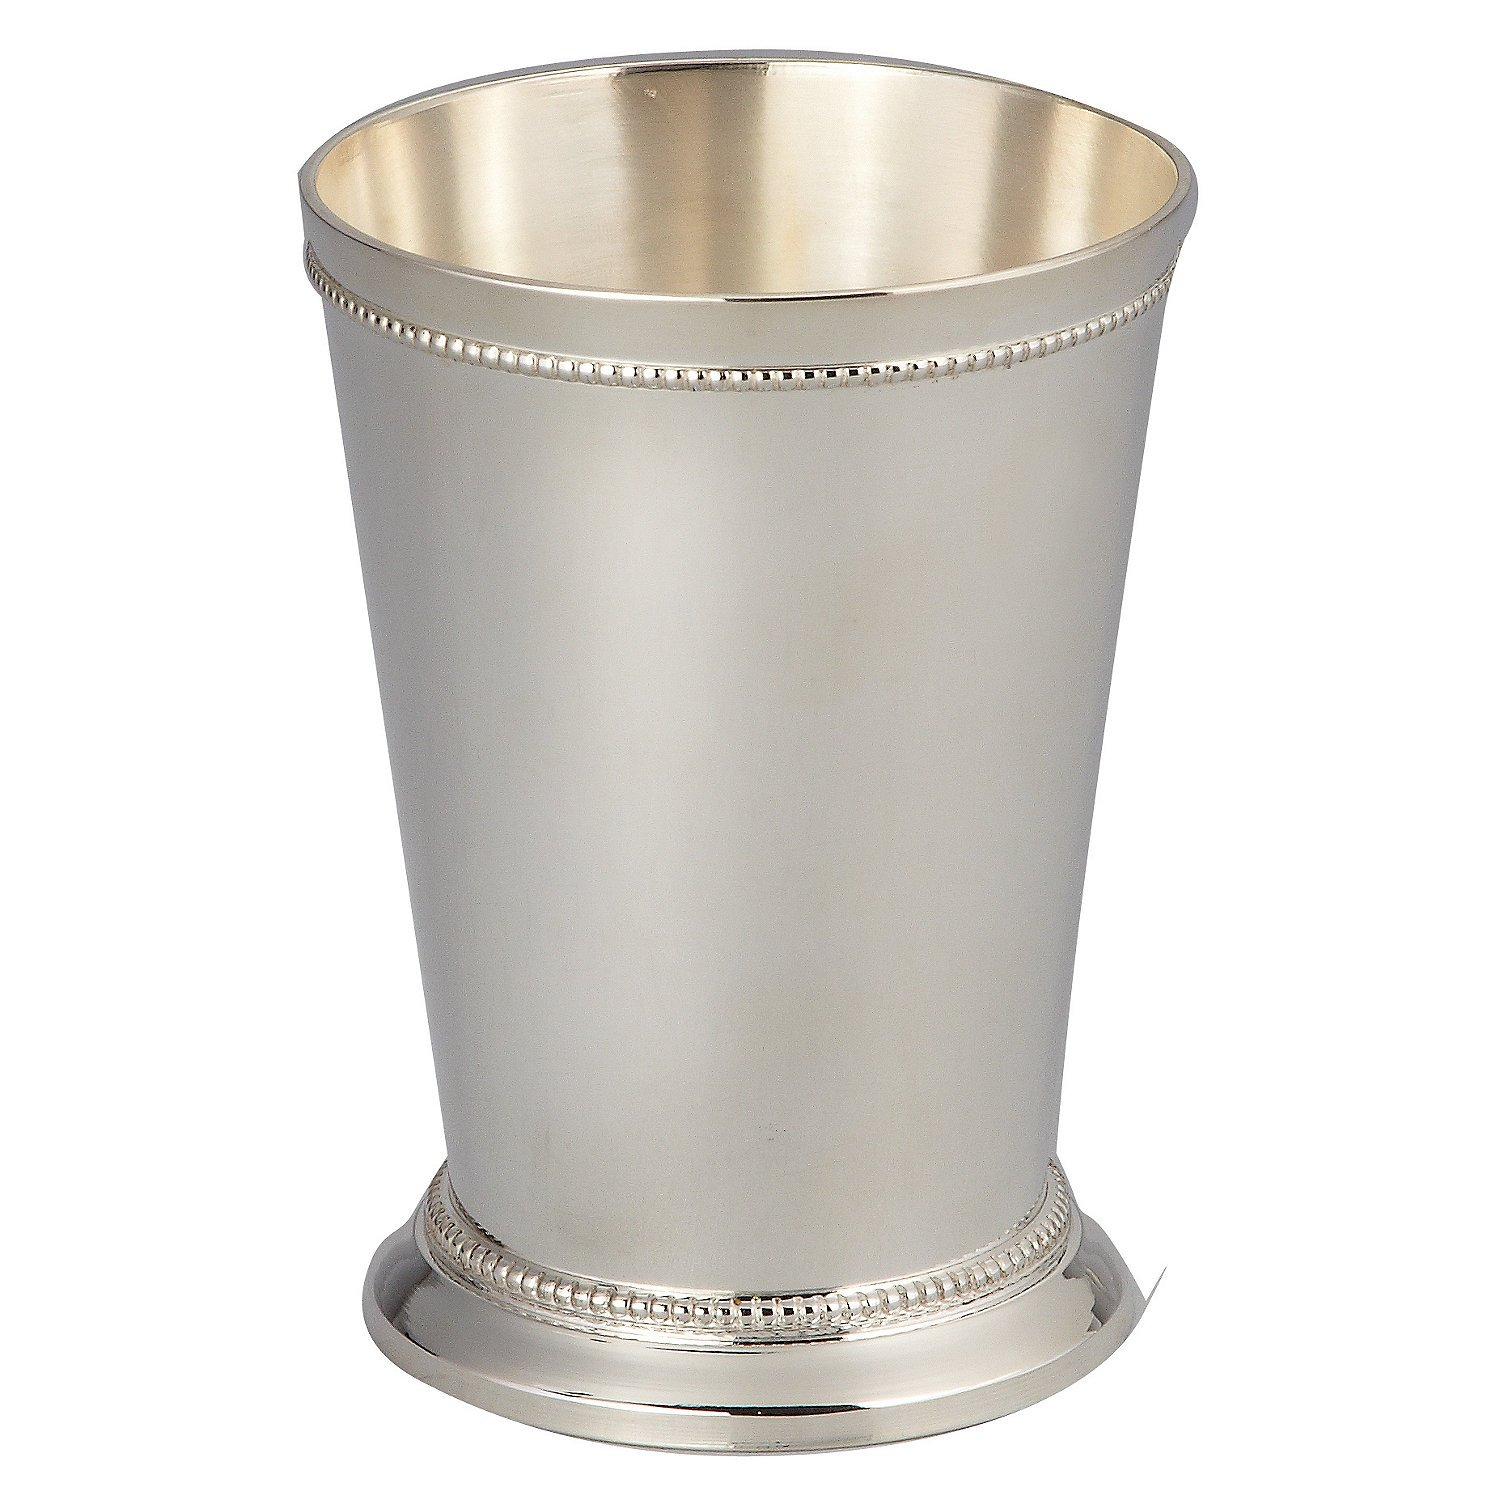 Elegance Silver 90371 Silver Plated Beaded Mint Julep Cup, 12 oz. by Elegance